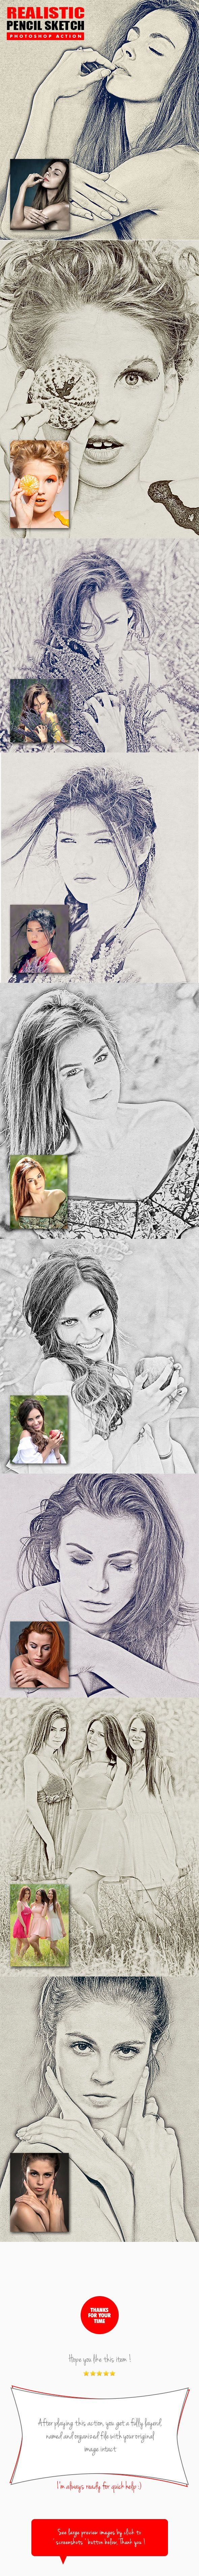 Realistic Pencil Sketch Photoshop Action. Download here: https://graphicriver.net/item/realistic-pencil-sketch-photoshop-action/17224591?ref=ksioks